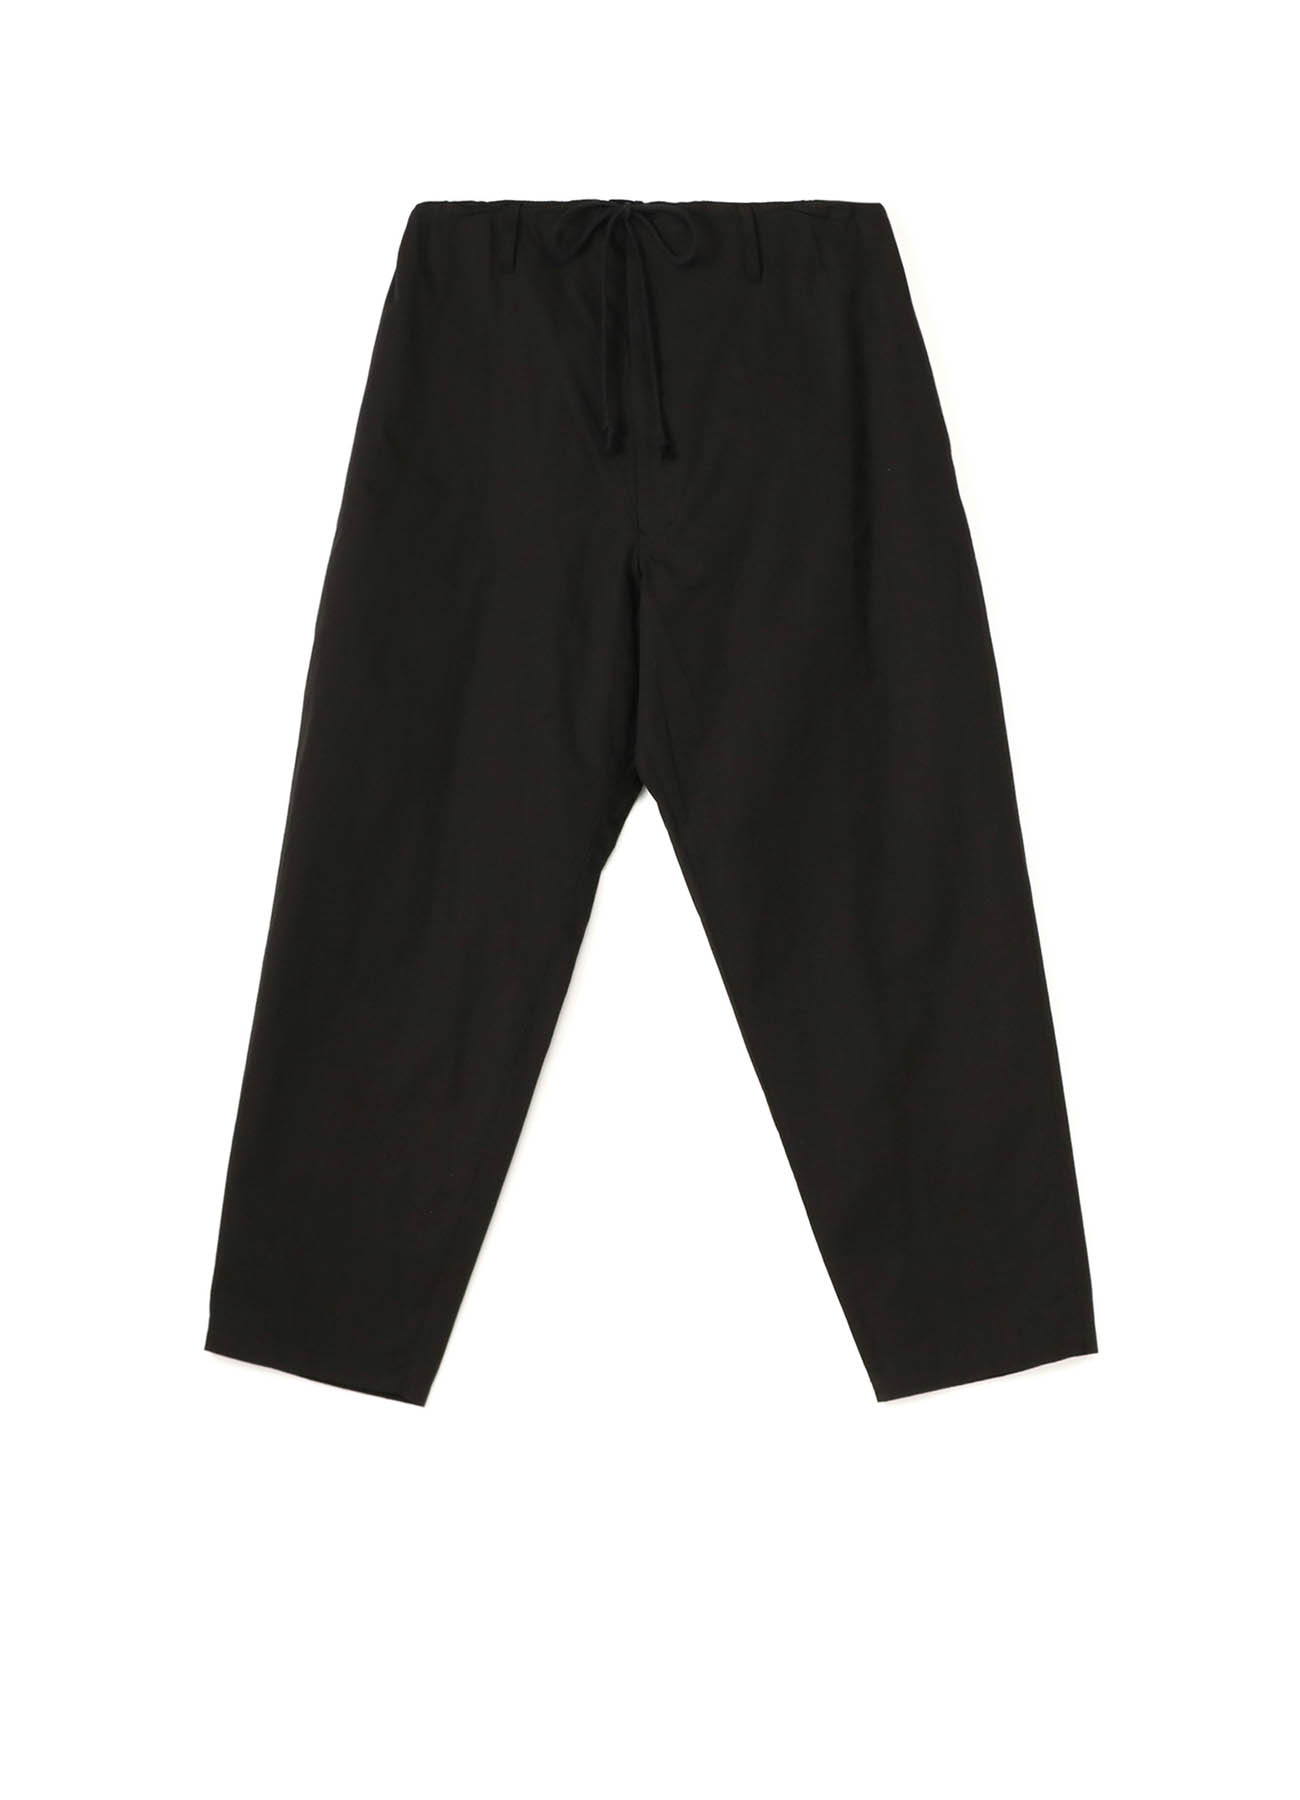 40/2 Cotton Broad Waist String Pants